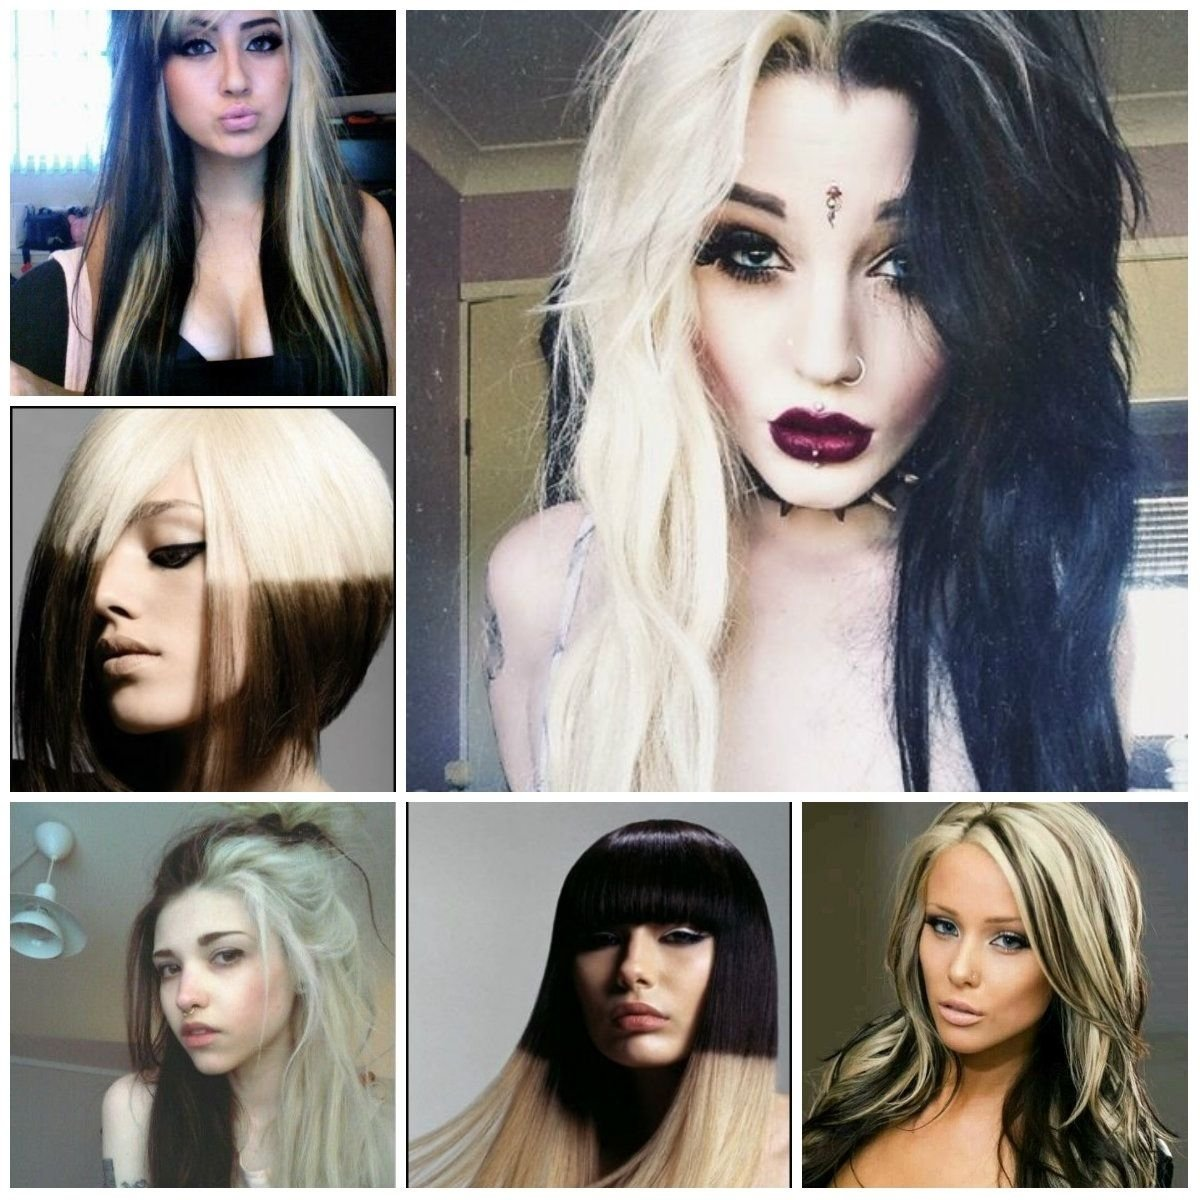 10 Best Blonde And Black Hair Color Ideas marvelous hair color ideas black and blonde half picture of on 1 2020